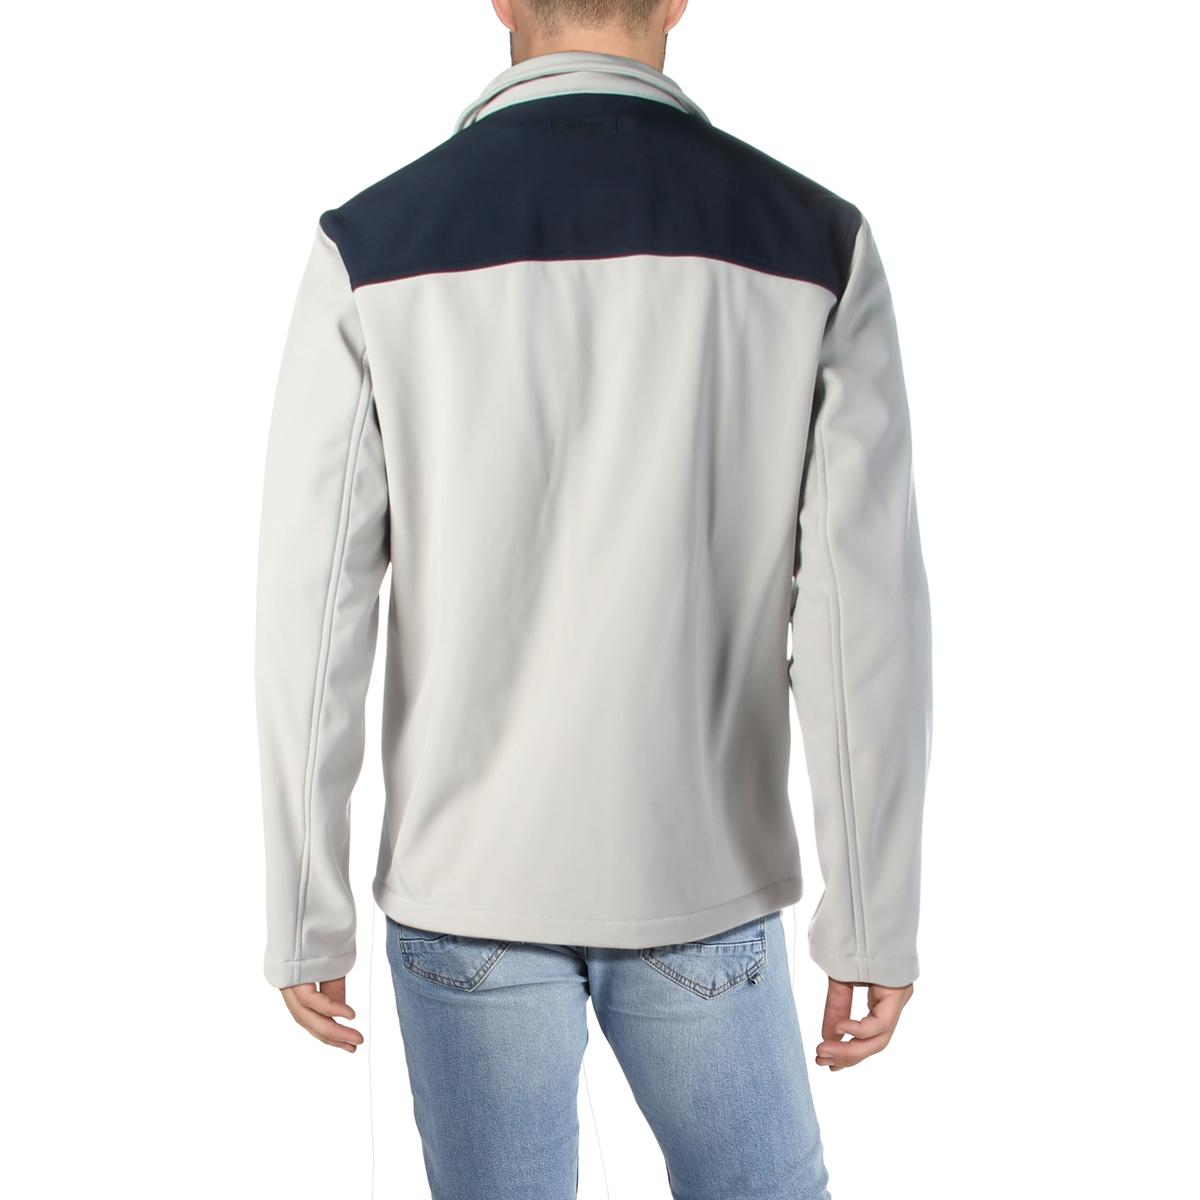 Tommy Hilfiger Mens Water Resistant Bomber Soft Shell Jacket Outerwear BHFO 6752